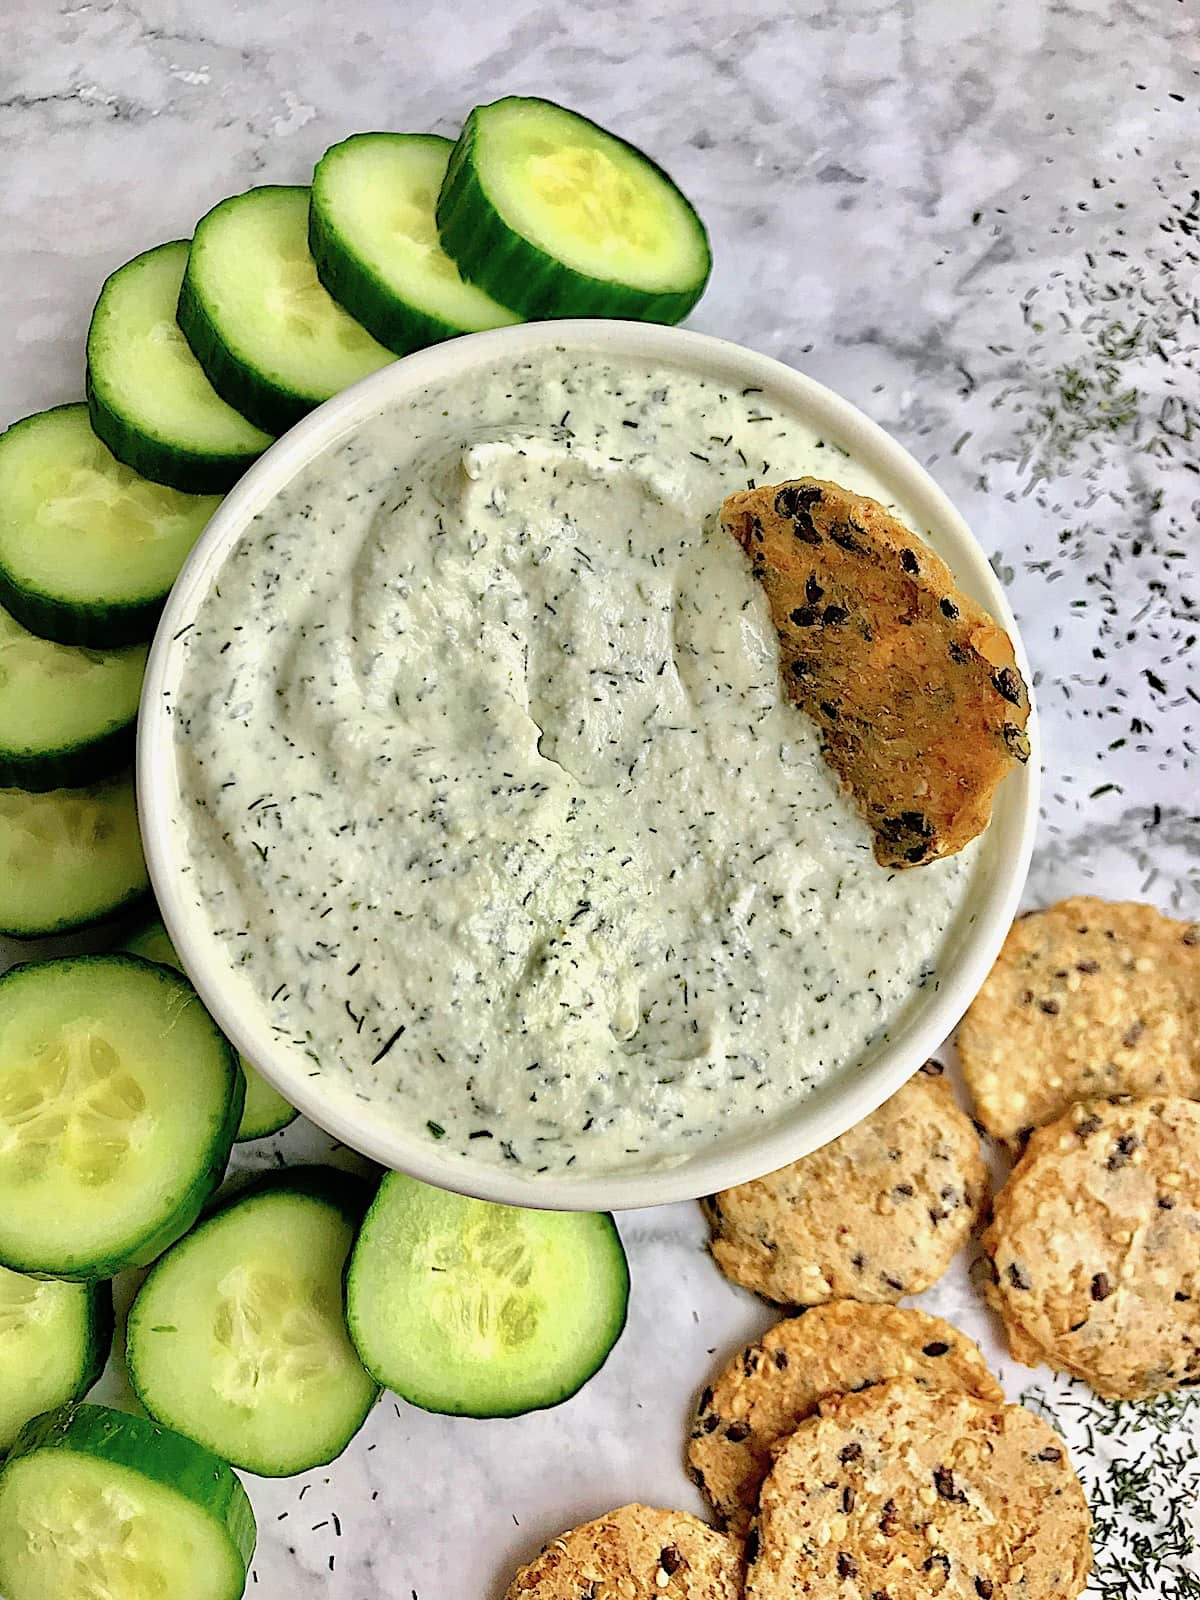 Tzatziki surrounded by cucumber slices and crackers on a table with dill sprinkled on it.